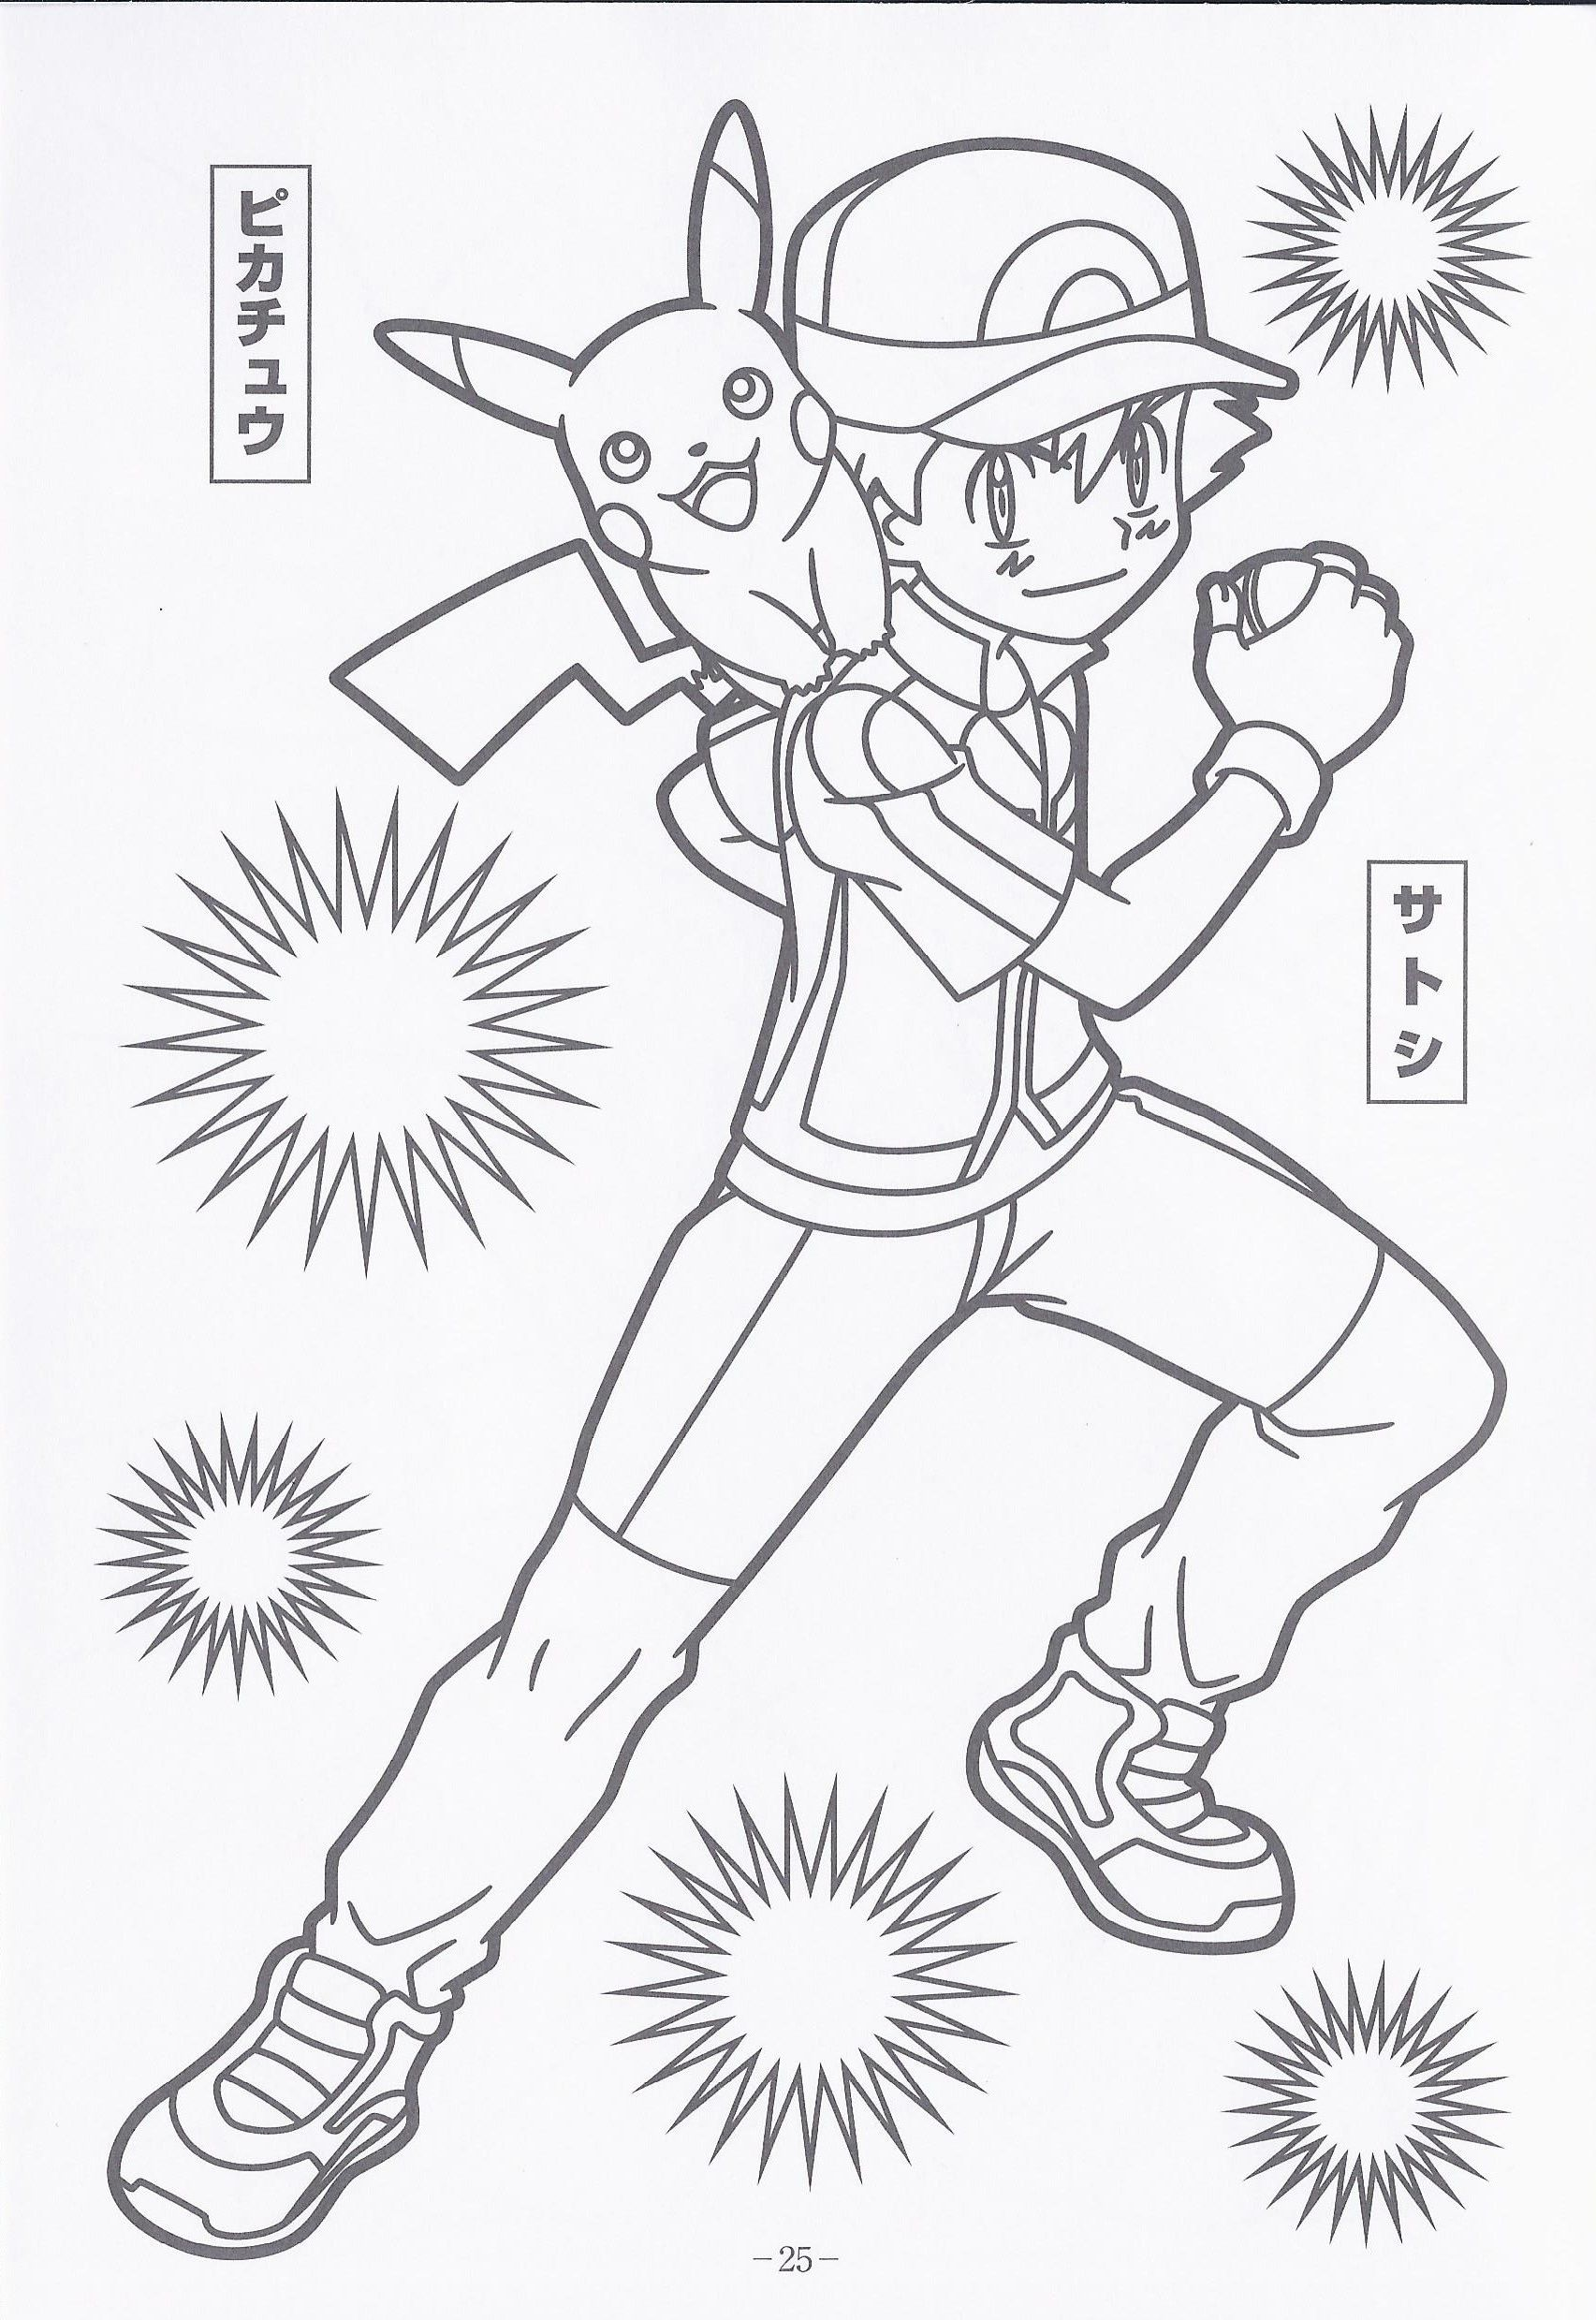 Pin By Austina Nee On Pokemon Xy Coloring Pikachu Coloring Page Cartoon Coloring Pages Pokemon Coloring Pages